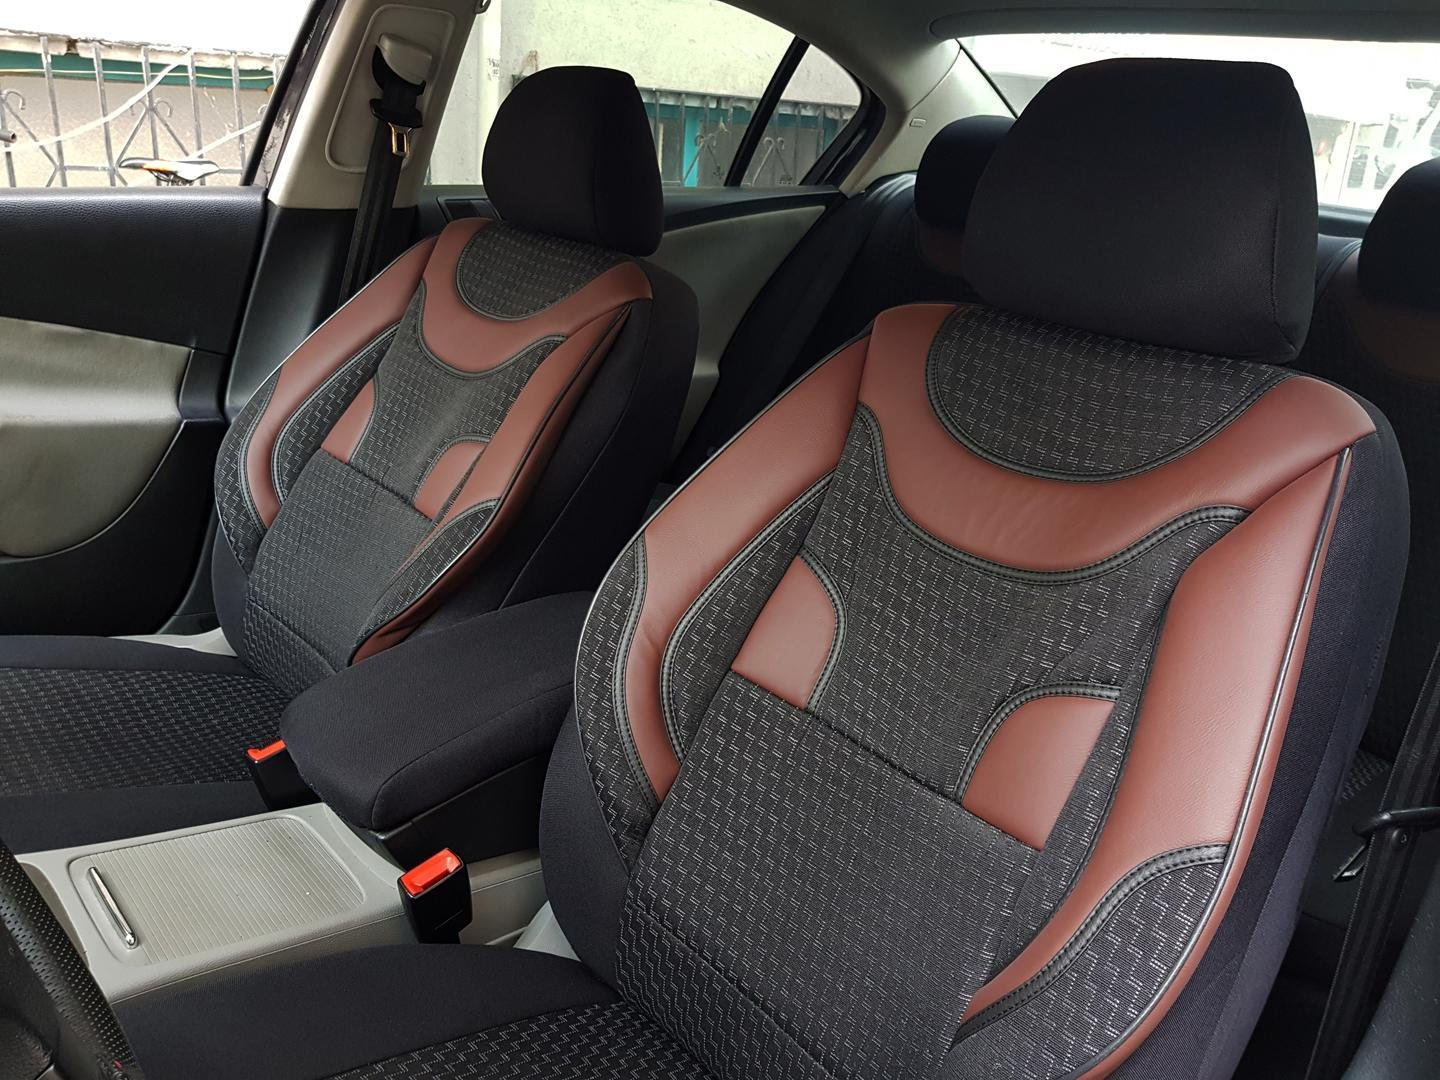 Full Set Luxury LEATHERETTE Car Seat Covers Protectors Ford C-MAX